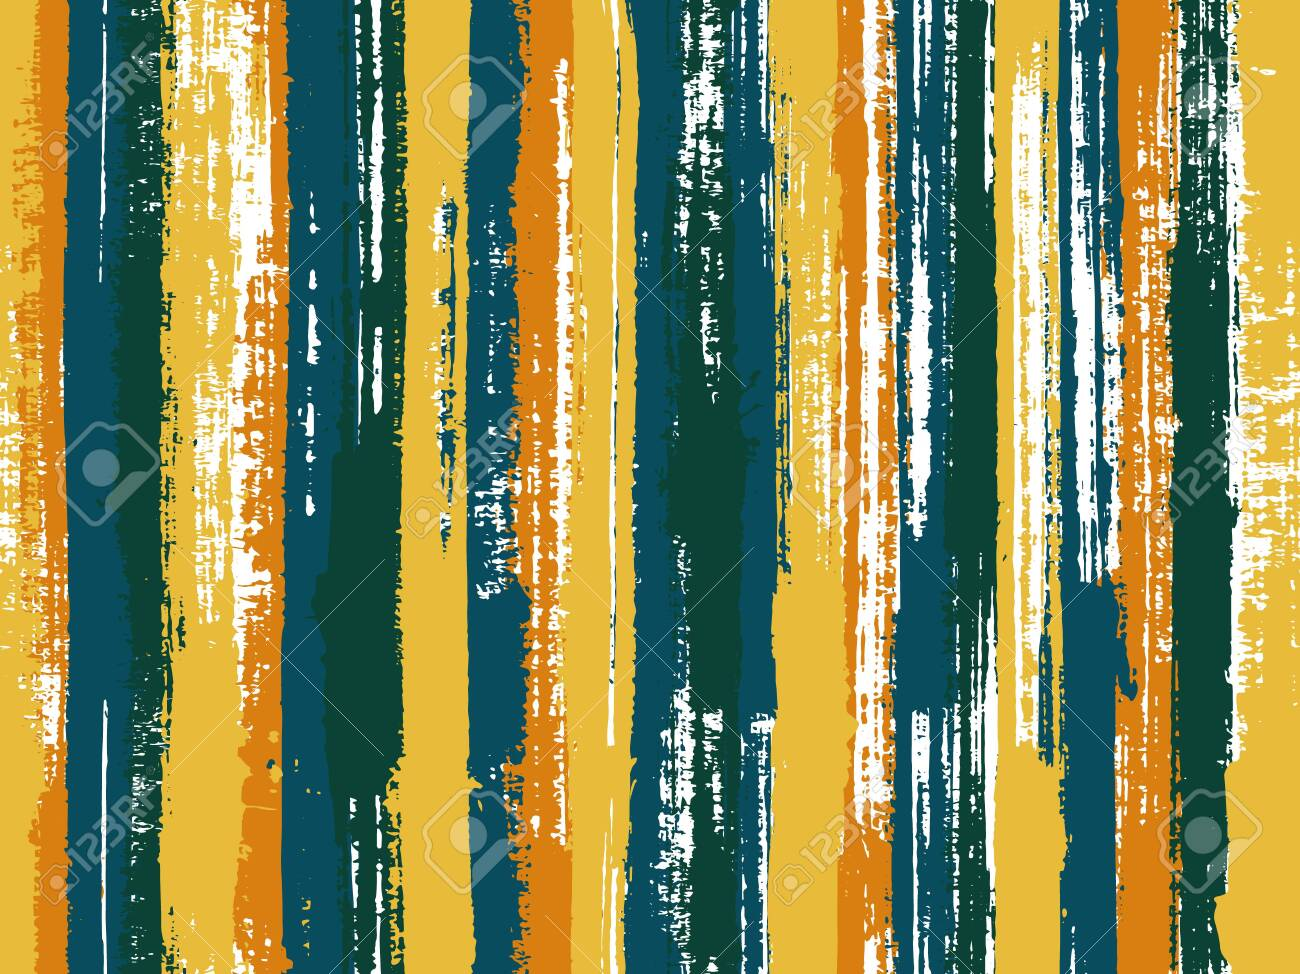 Watercolor strips seamless vector background. Multicolor ethnic sample swatch design. Old style background for poster, banner, card. Striped tablecloth textile print. - 131840971